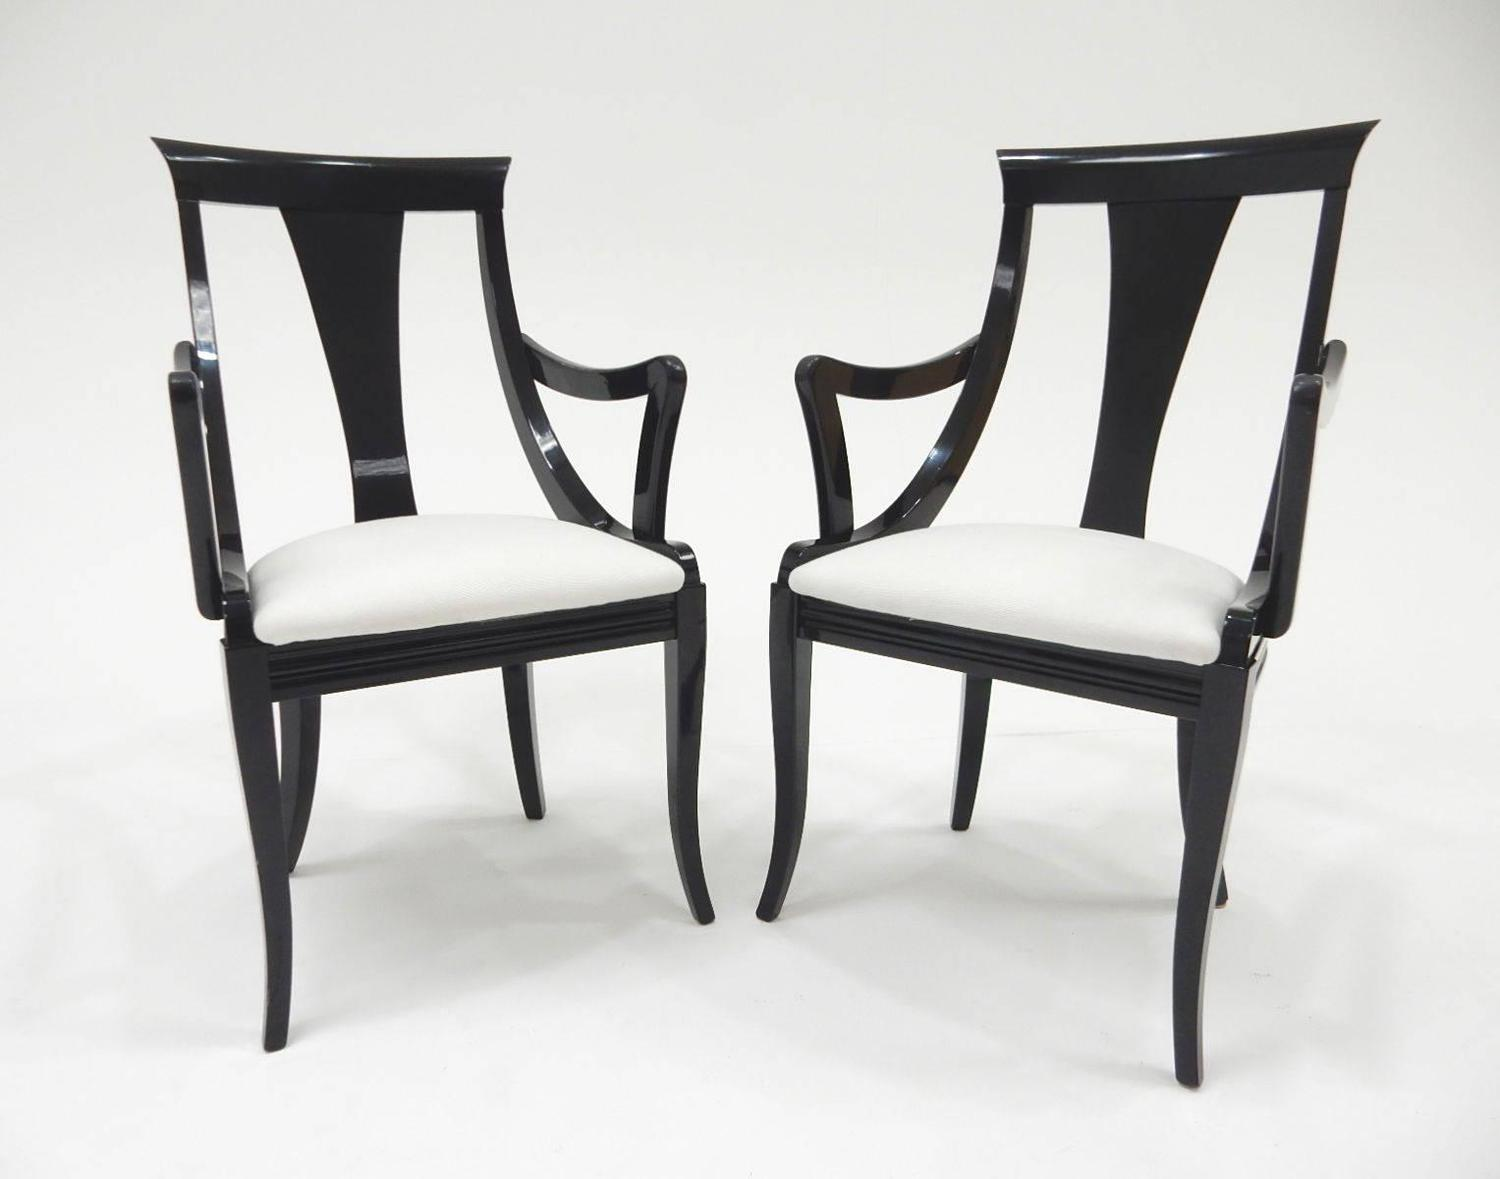 Sculptural Black Lacquer Dining Chairs By Pietro